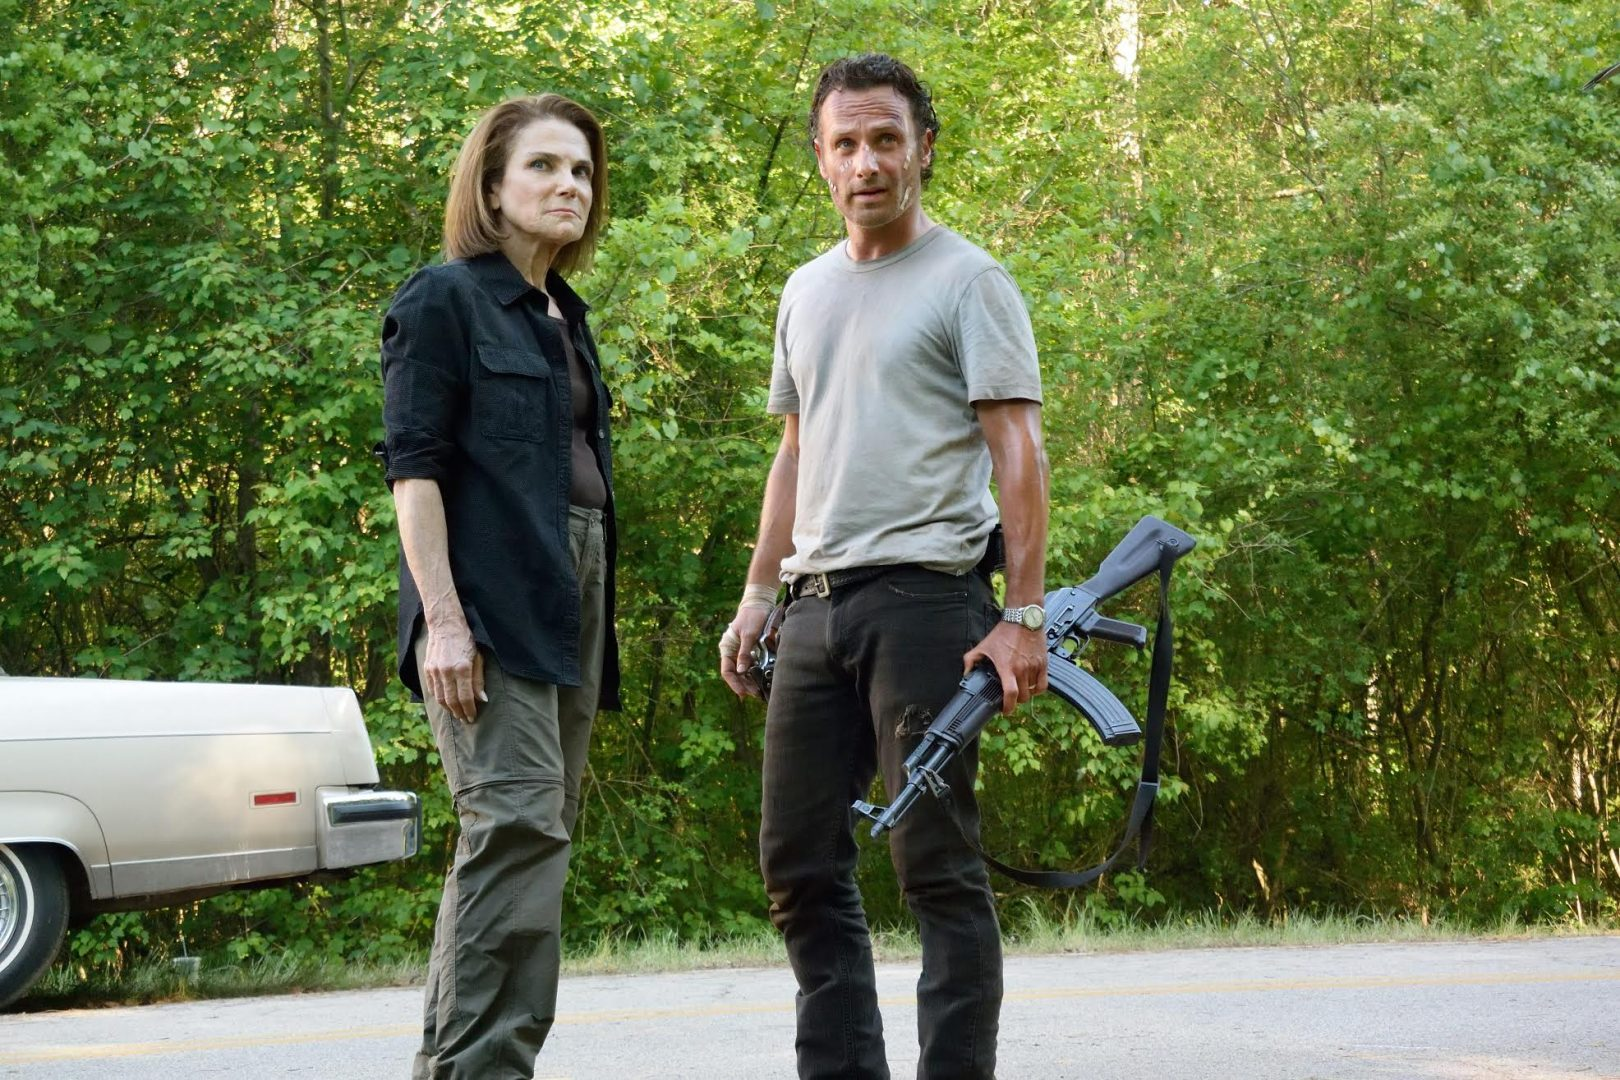 Tovah Feldshuh as Deanna Monroe and Andrew Lincoln as Rick Grimes - The Walking Dead _ Season 6, Episode 1 - Photo Credit: Gene Page/AMC